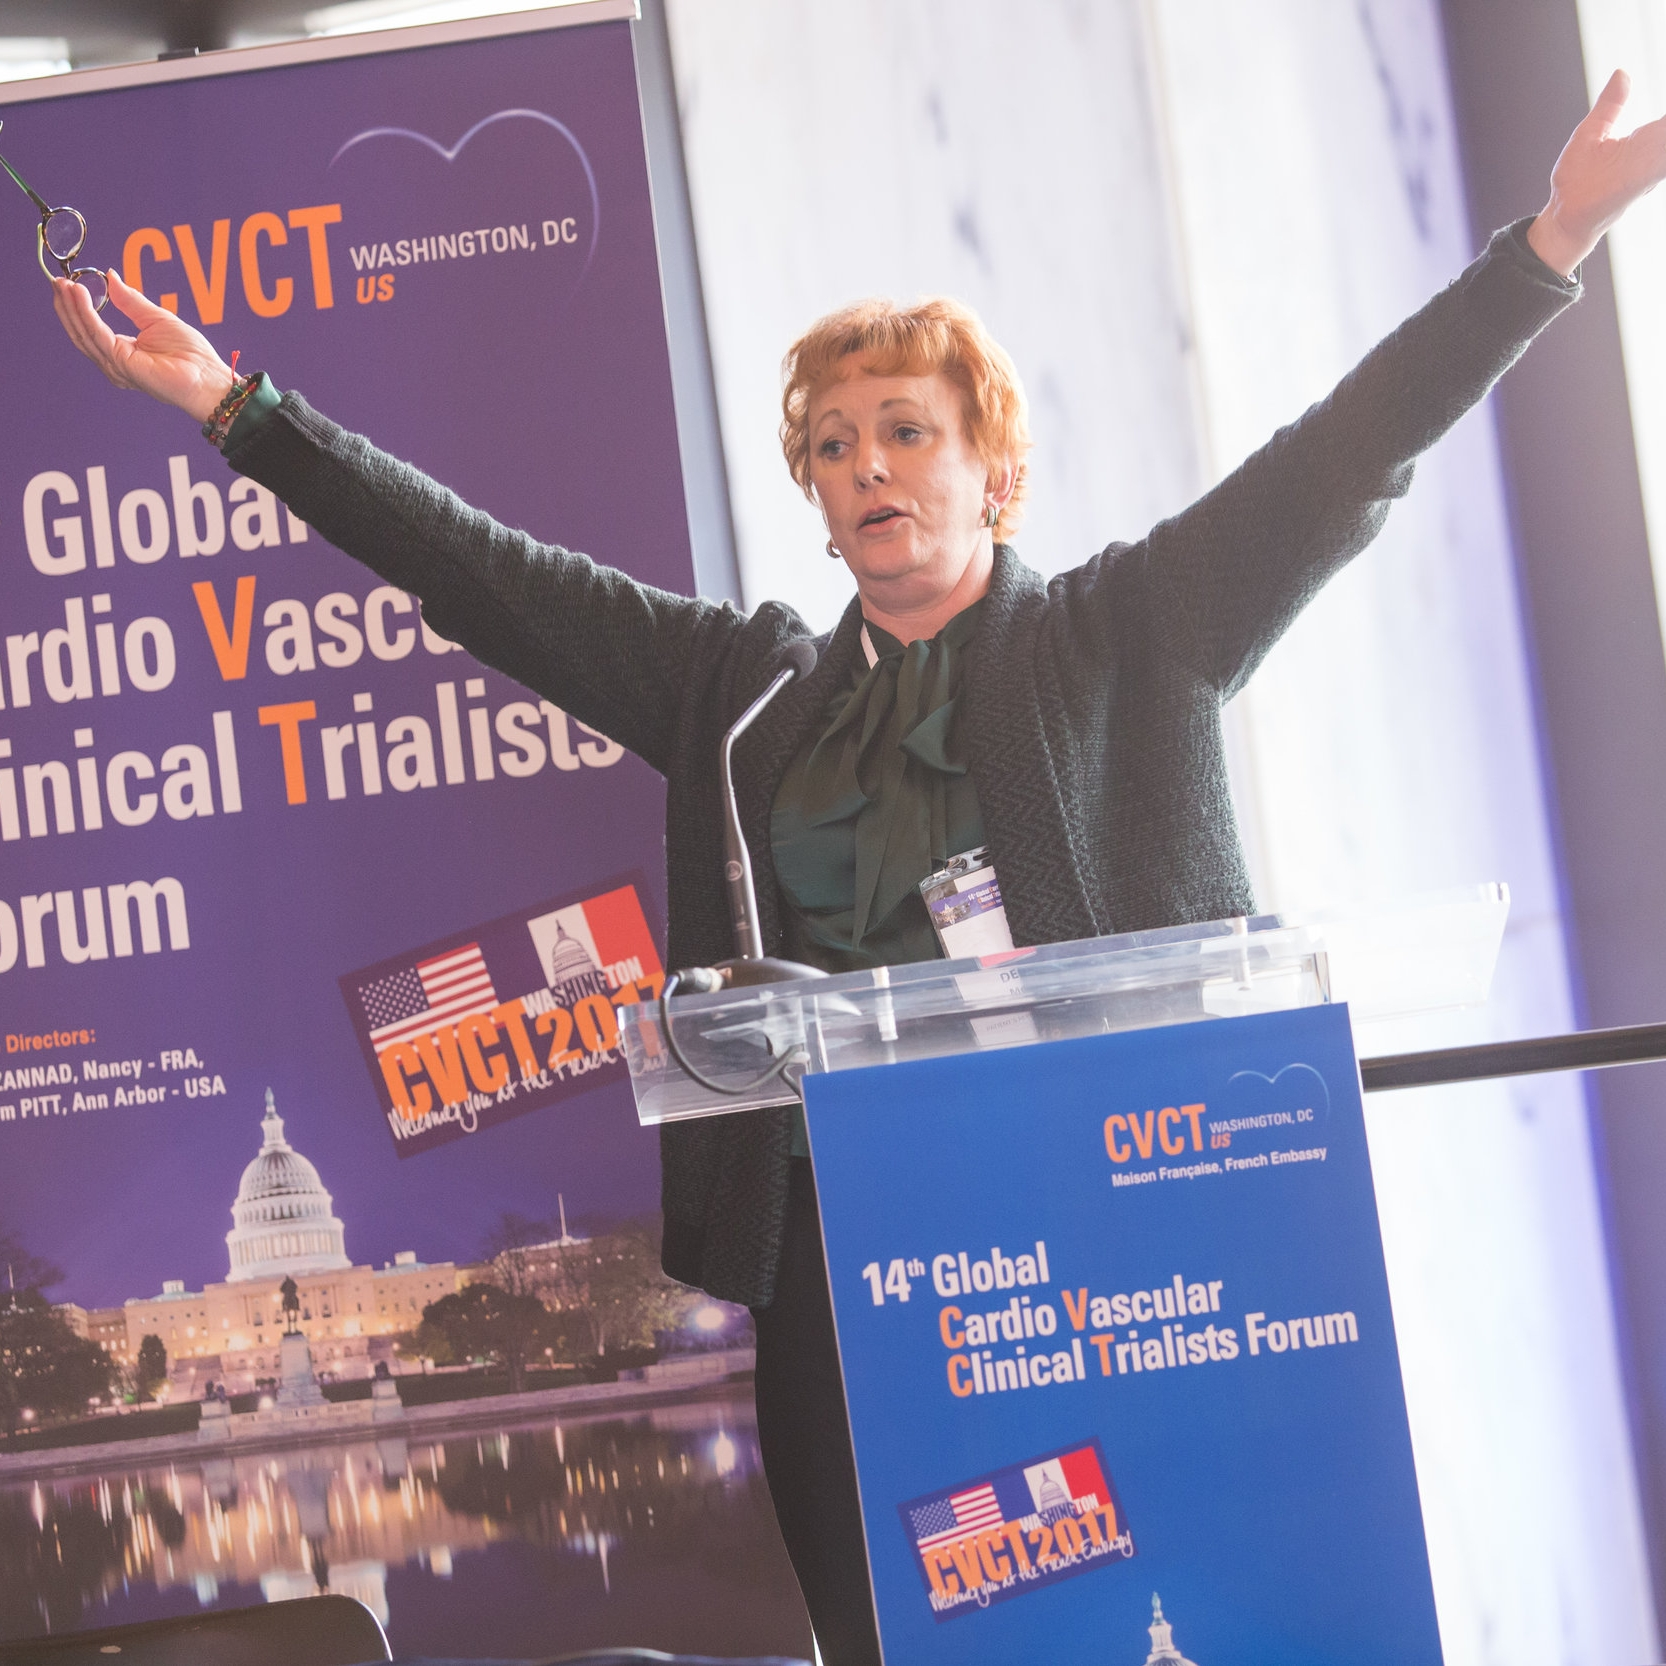 Debbe McCall giving the patient perspective at CVCT 2017